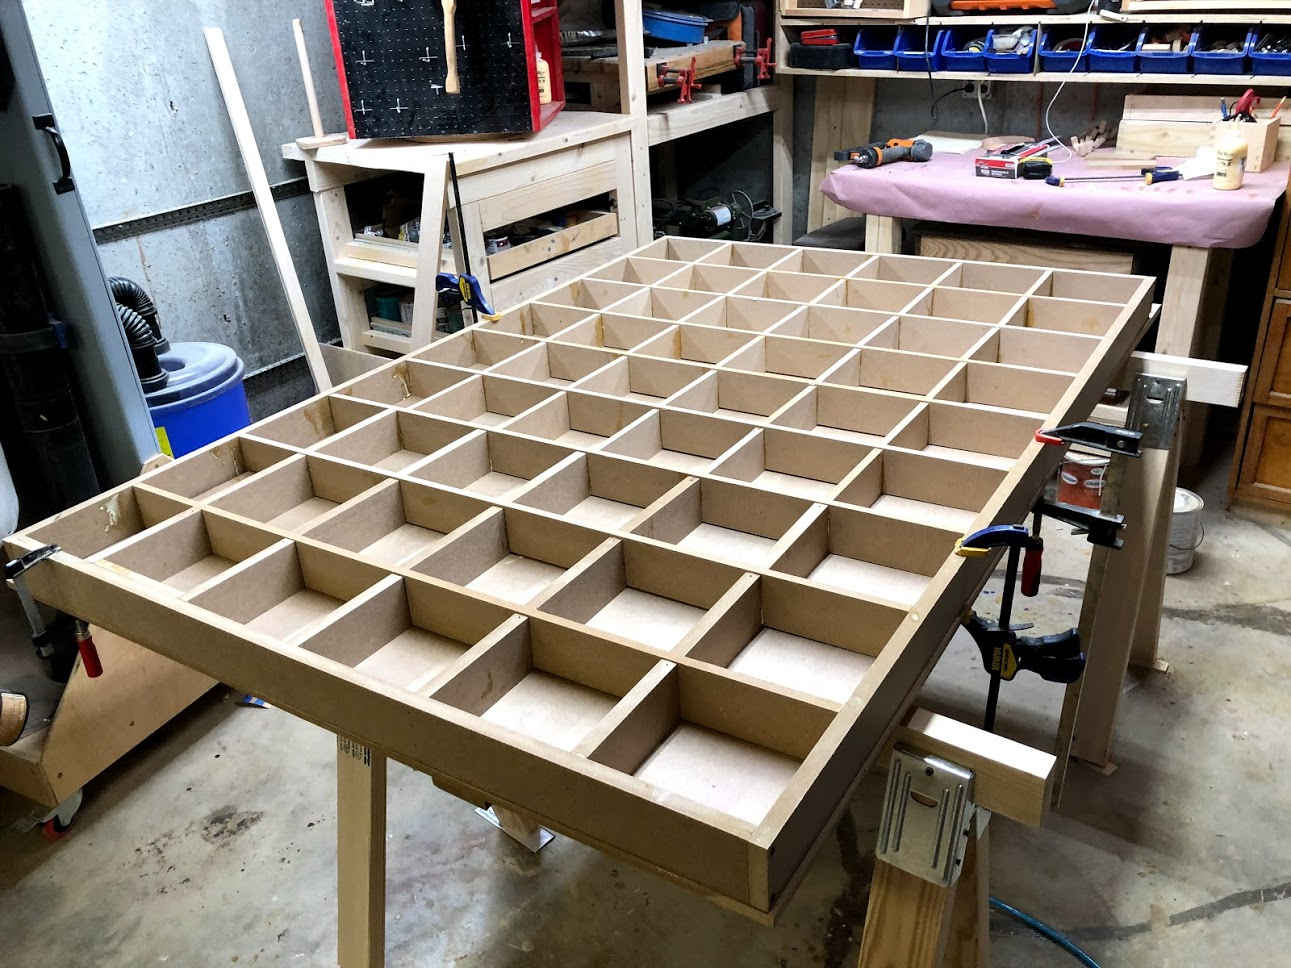 I used clamps to keep the mdf panel flat as I was conforming the inner grid to that surface, it does not have to look pretty but it needs to be flat